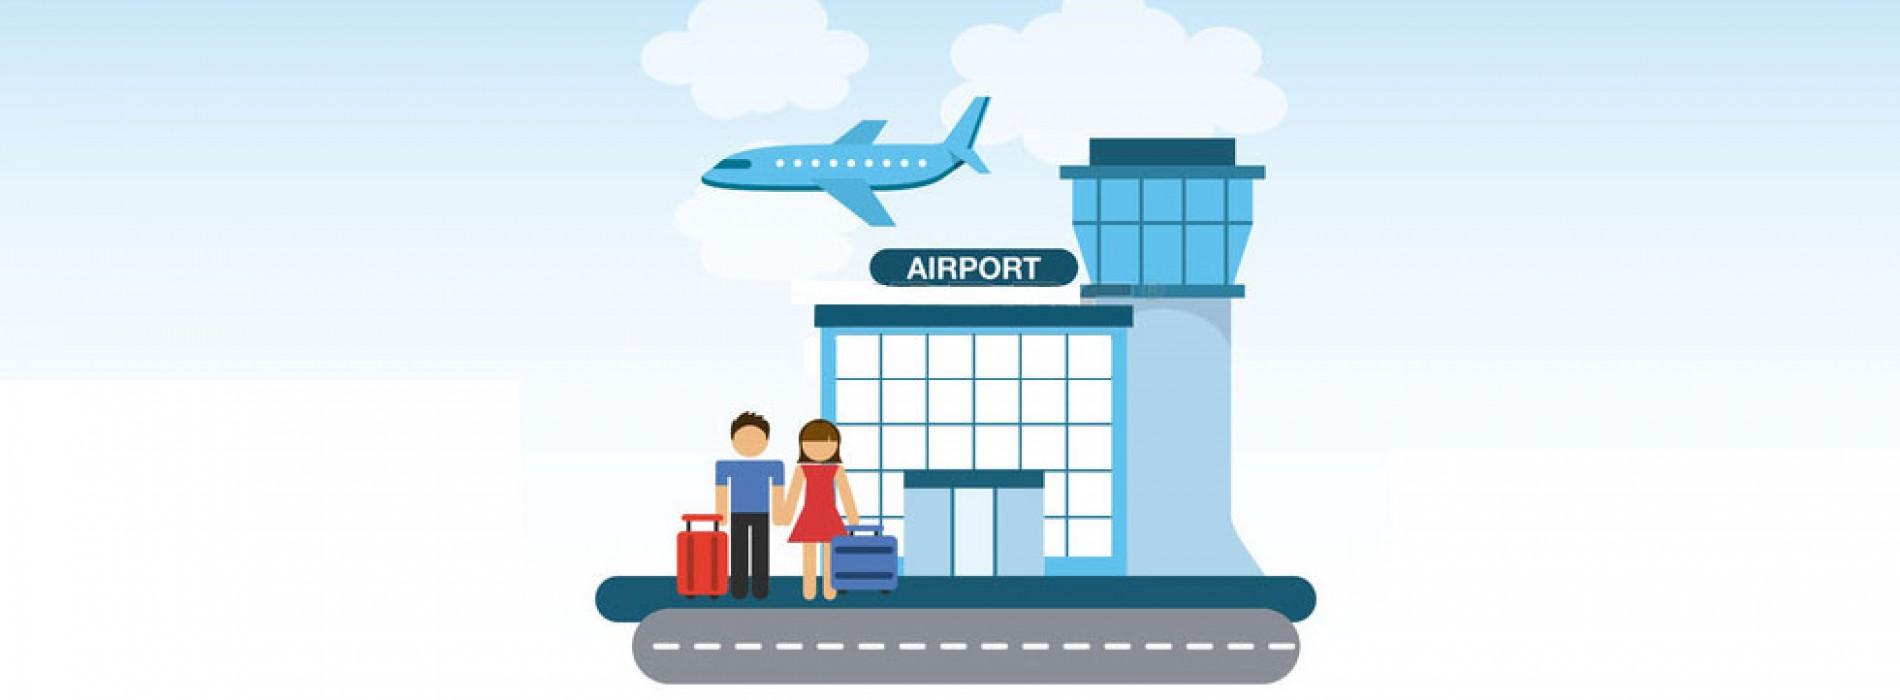 Indian government approves 14 greenfield airports